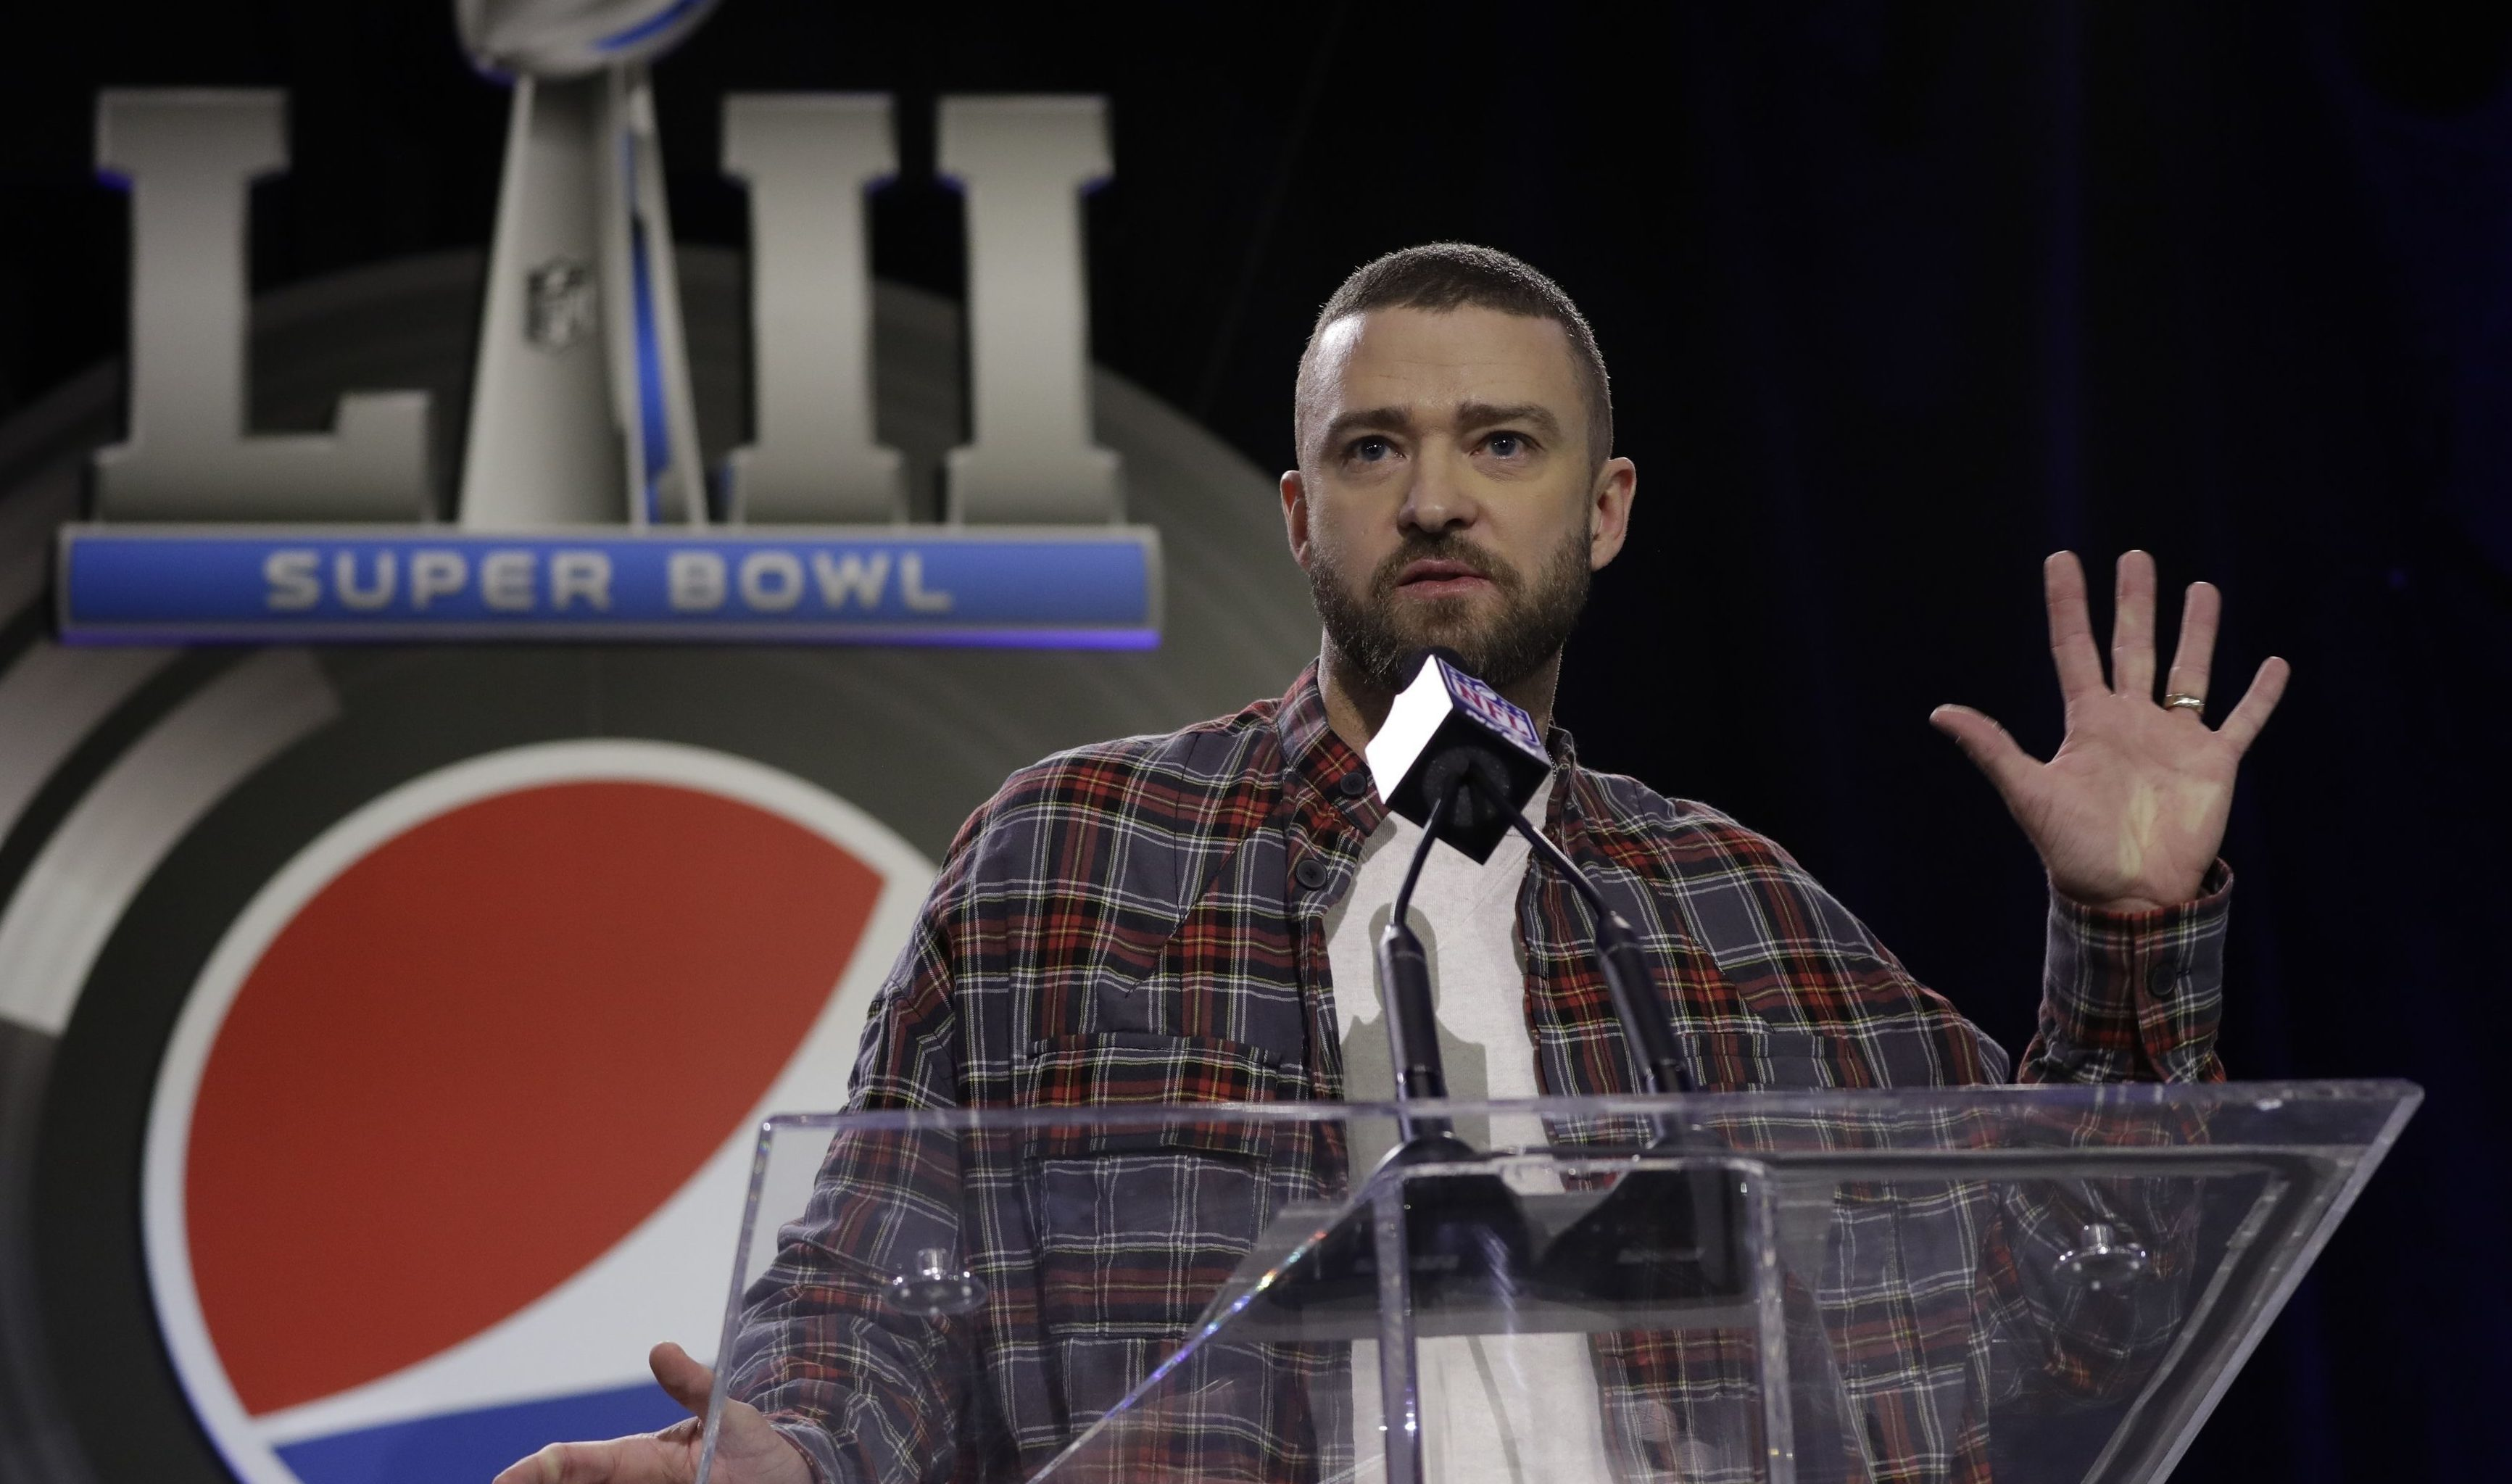 Justin Timberlake during a news conference for halftime show (AP Photo/Matt Slocum)